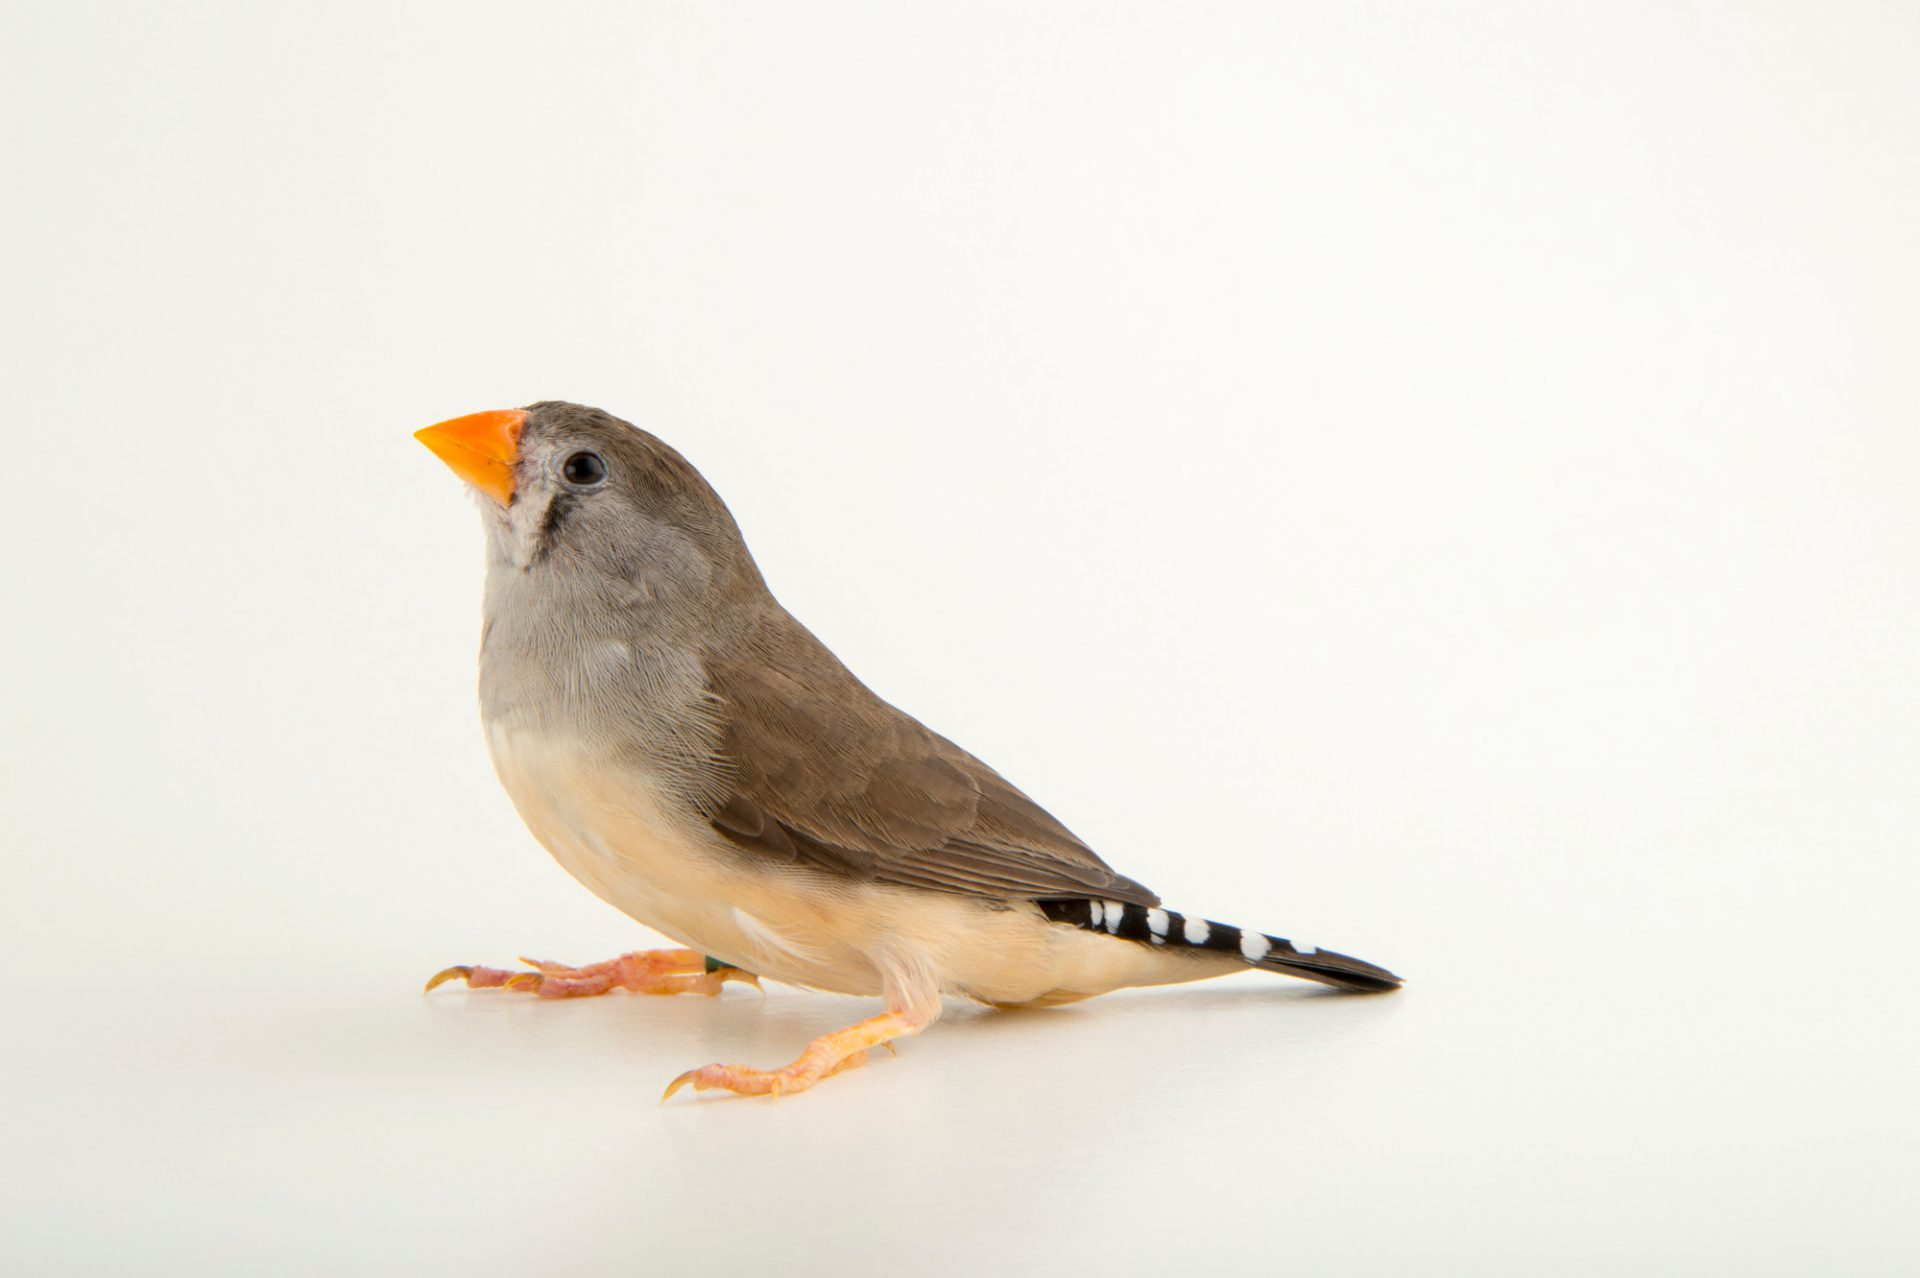 A female Timor zebra finch (Taeniopygia guttata) at the Plzen Zoo in the Czech Republic.